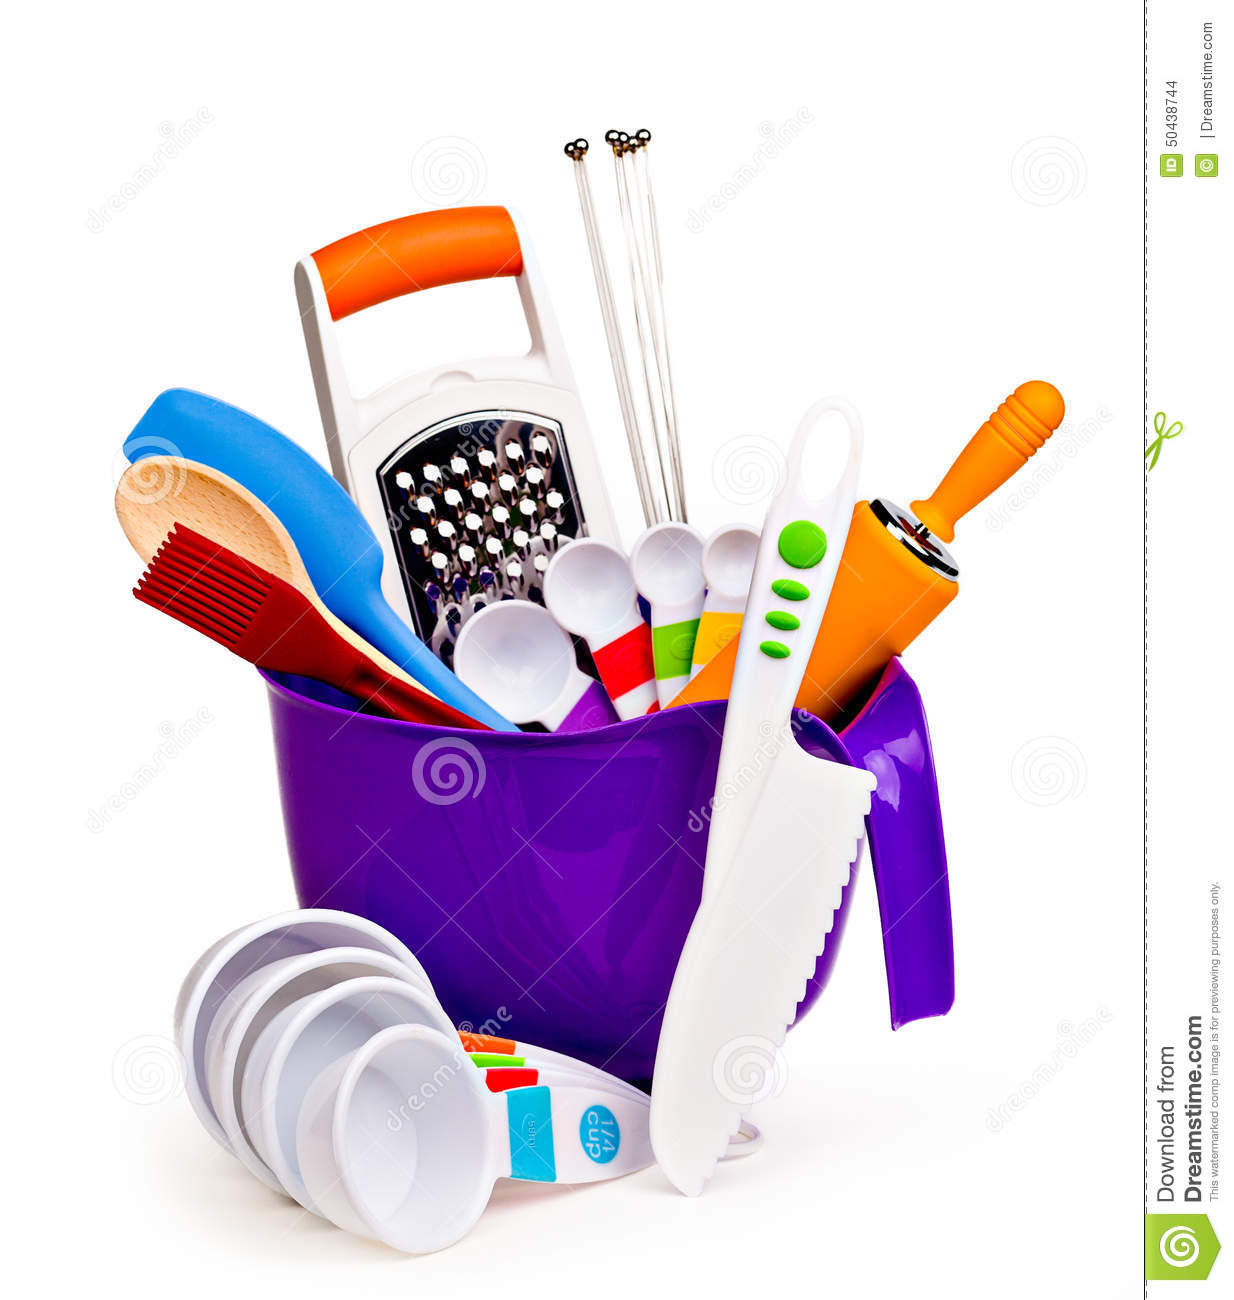 Colorful Kitchen Tools Stock Photo Image Of Grater Measuring